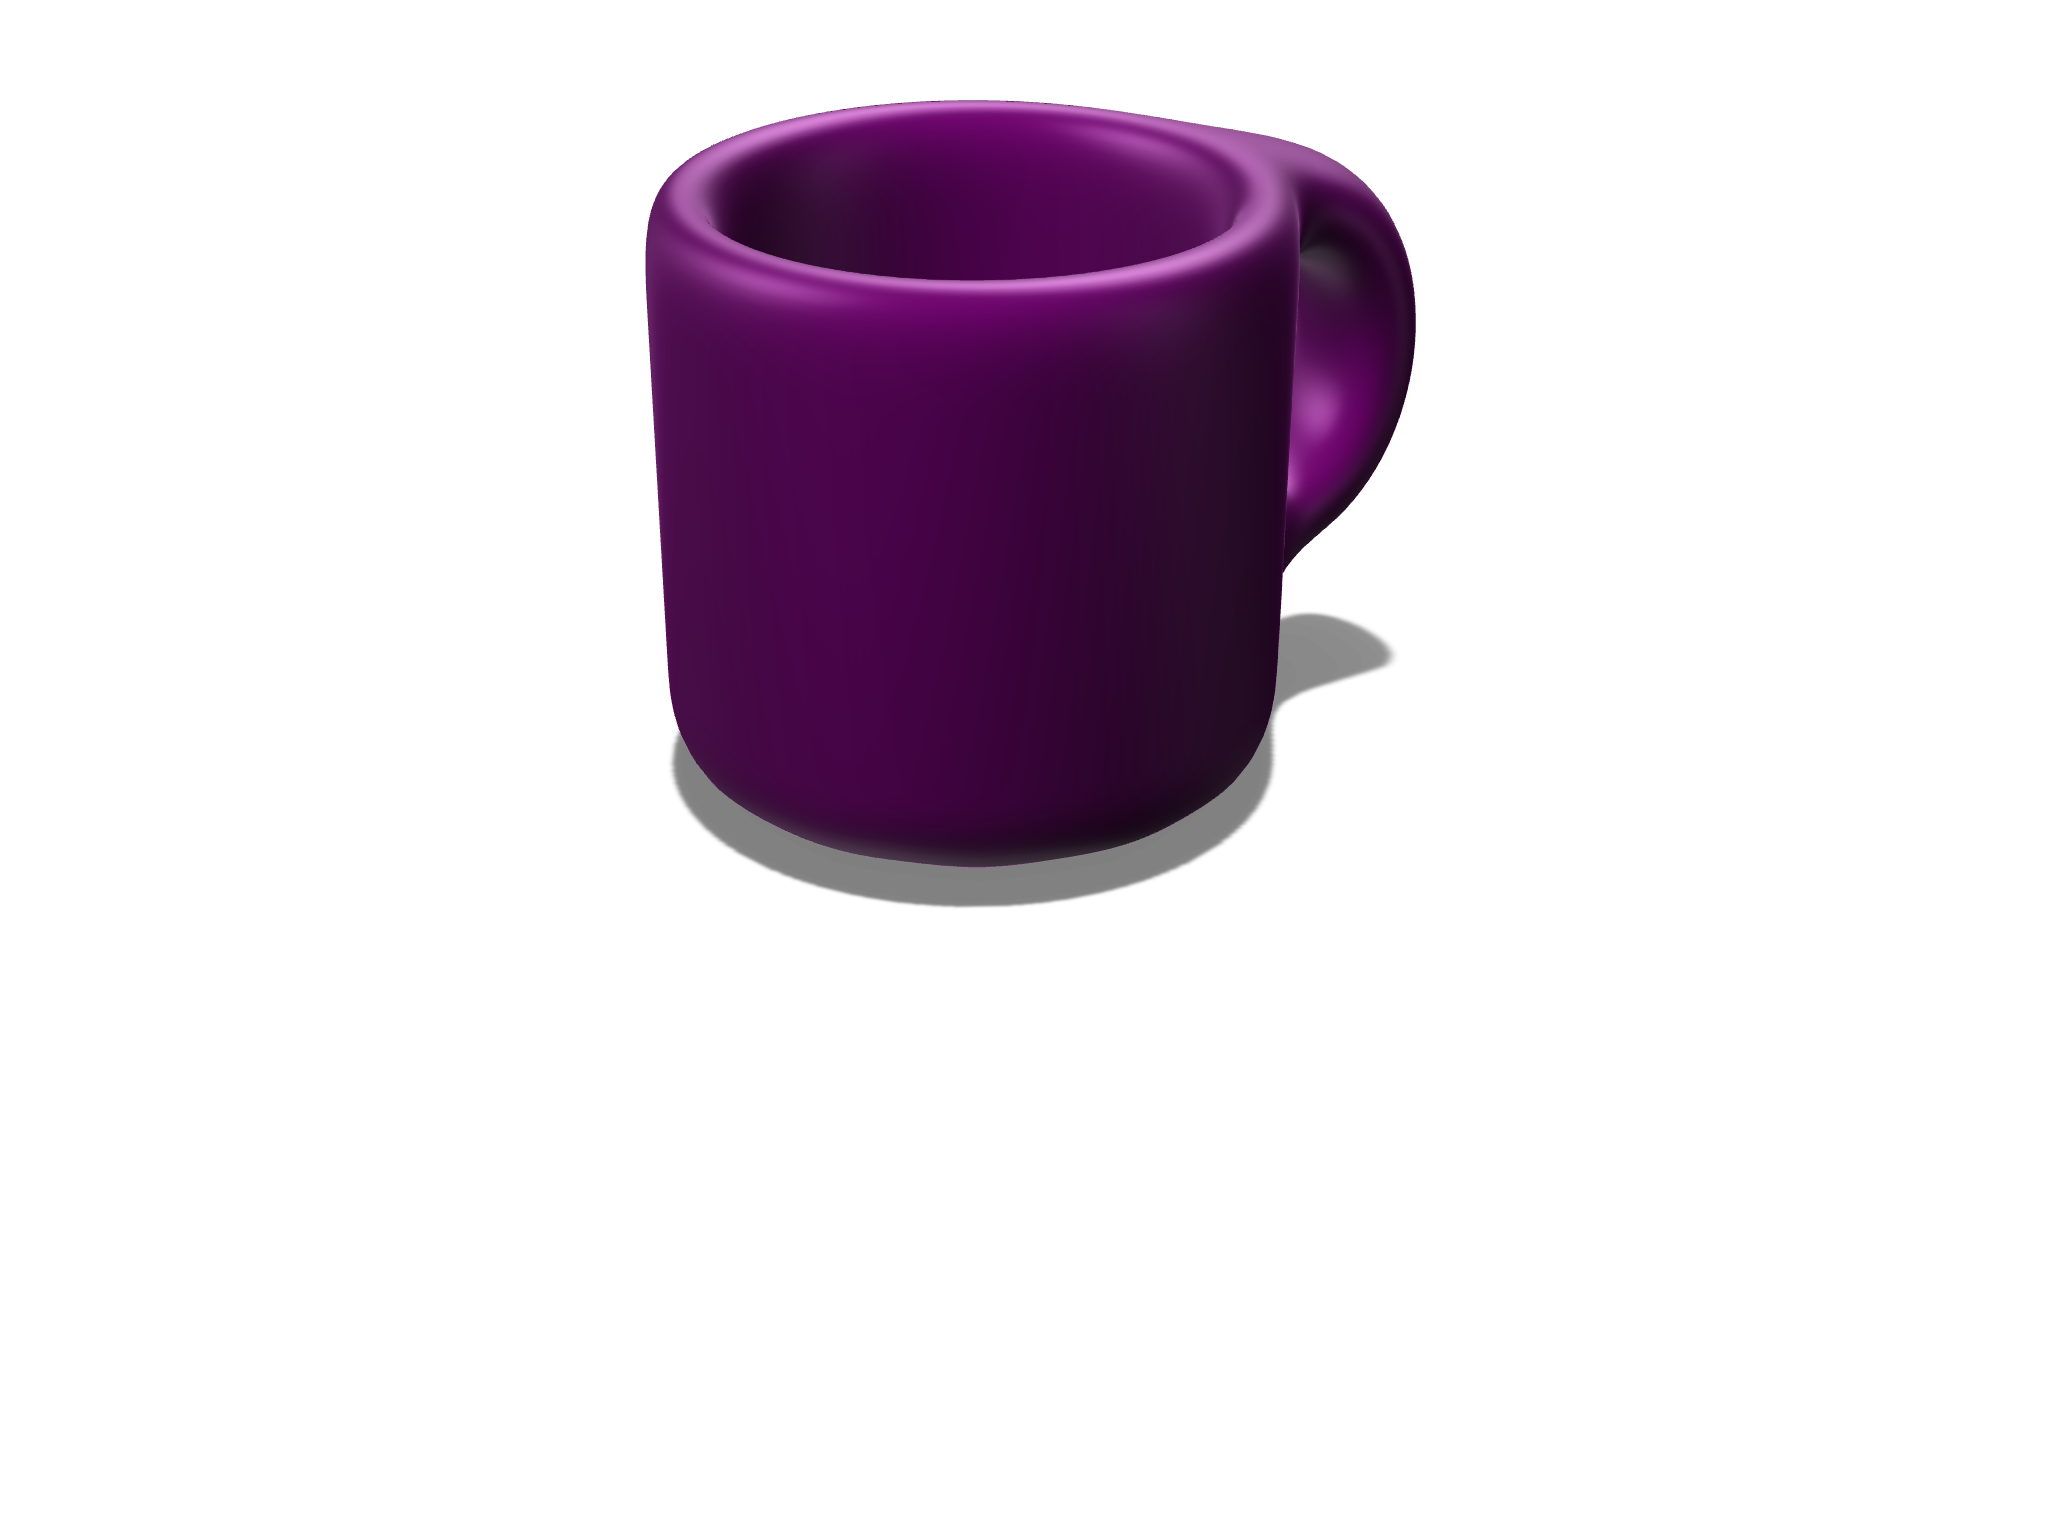 Cup - 3D design by Bastian Kreiter Apr 23, 2018